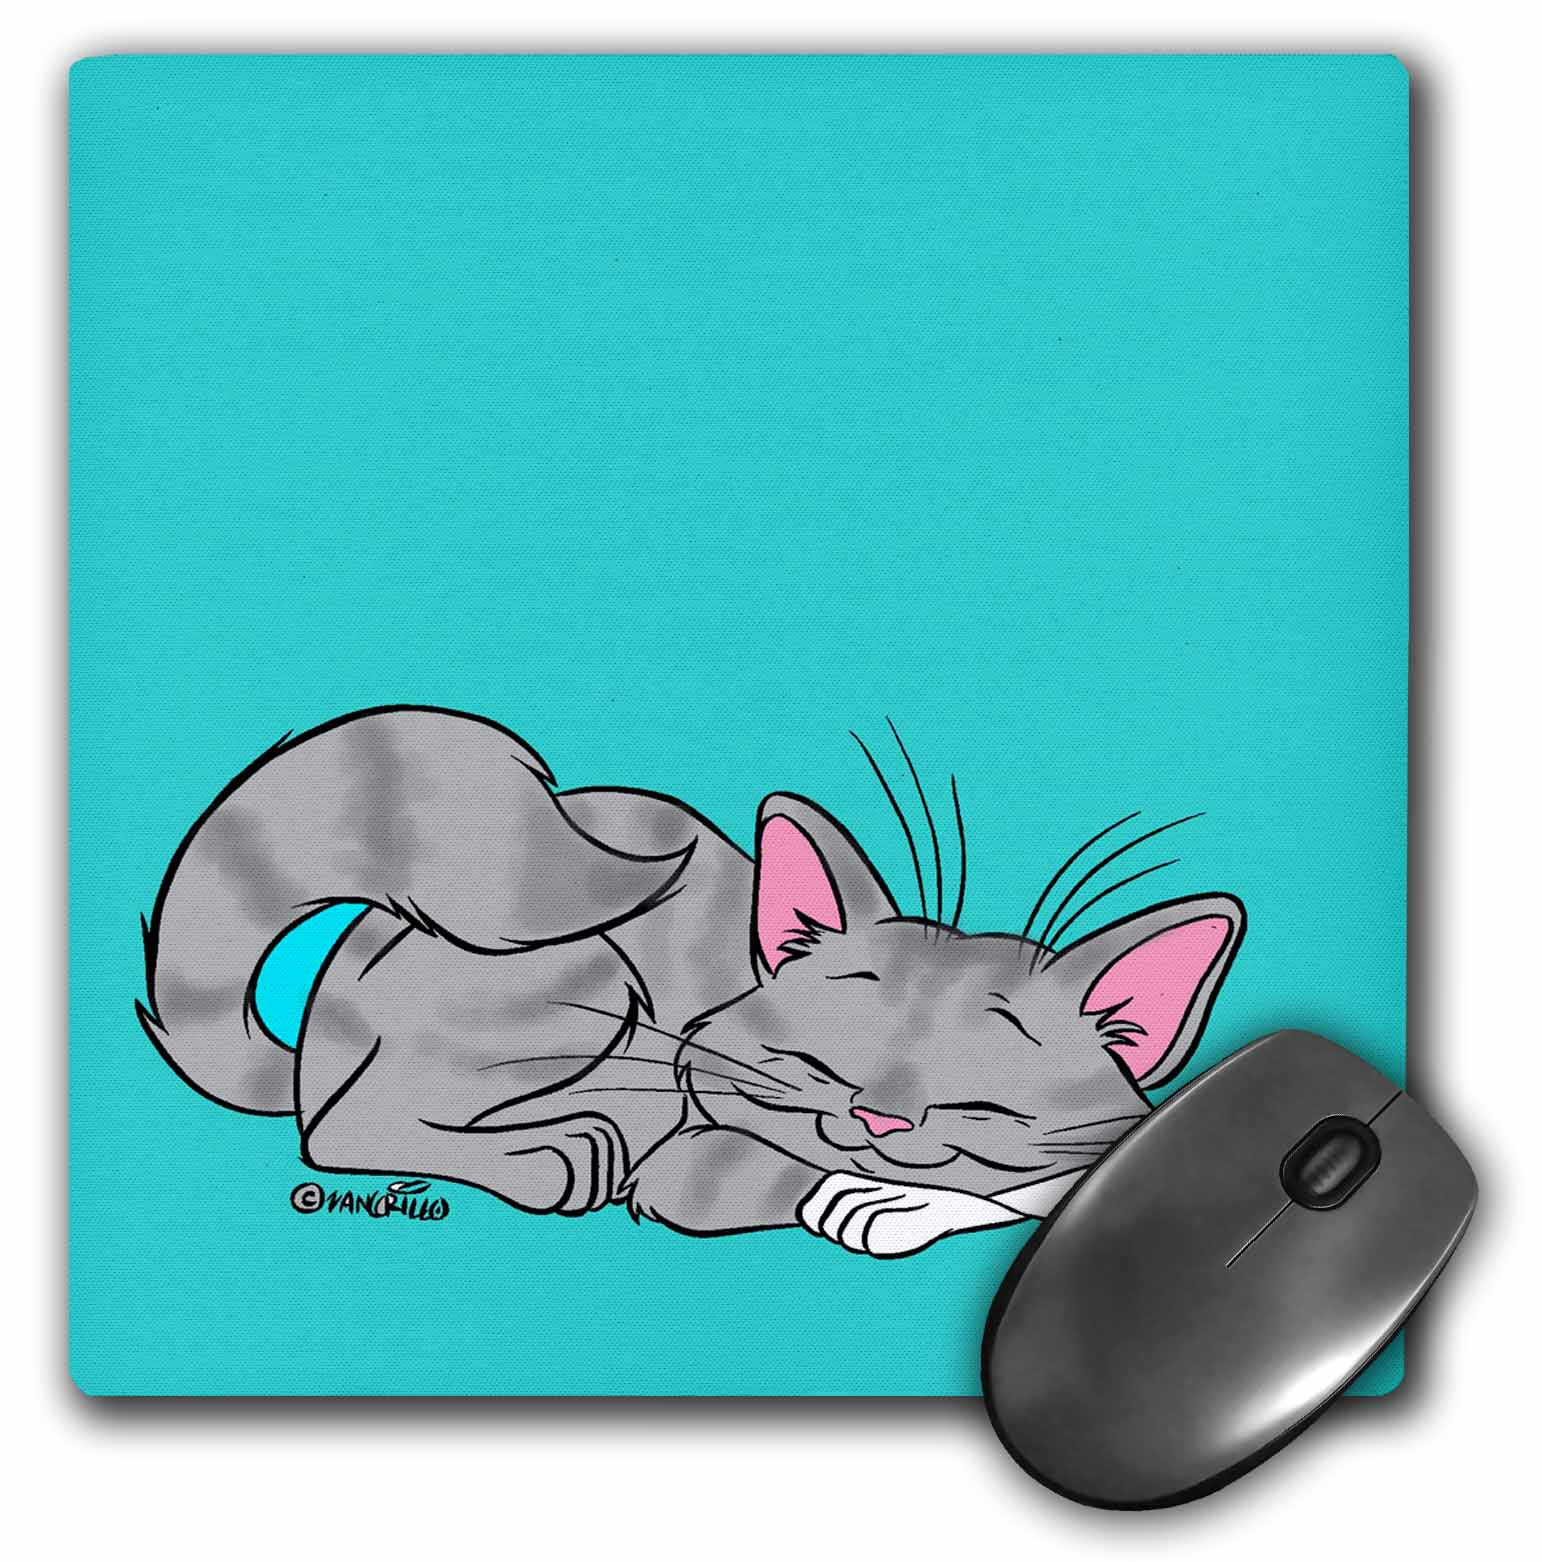 3dRose Sleeping Cat, Mouse Pad, 8 by 8 inches